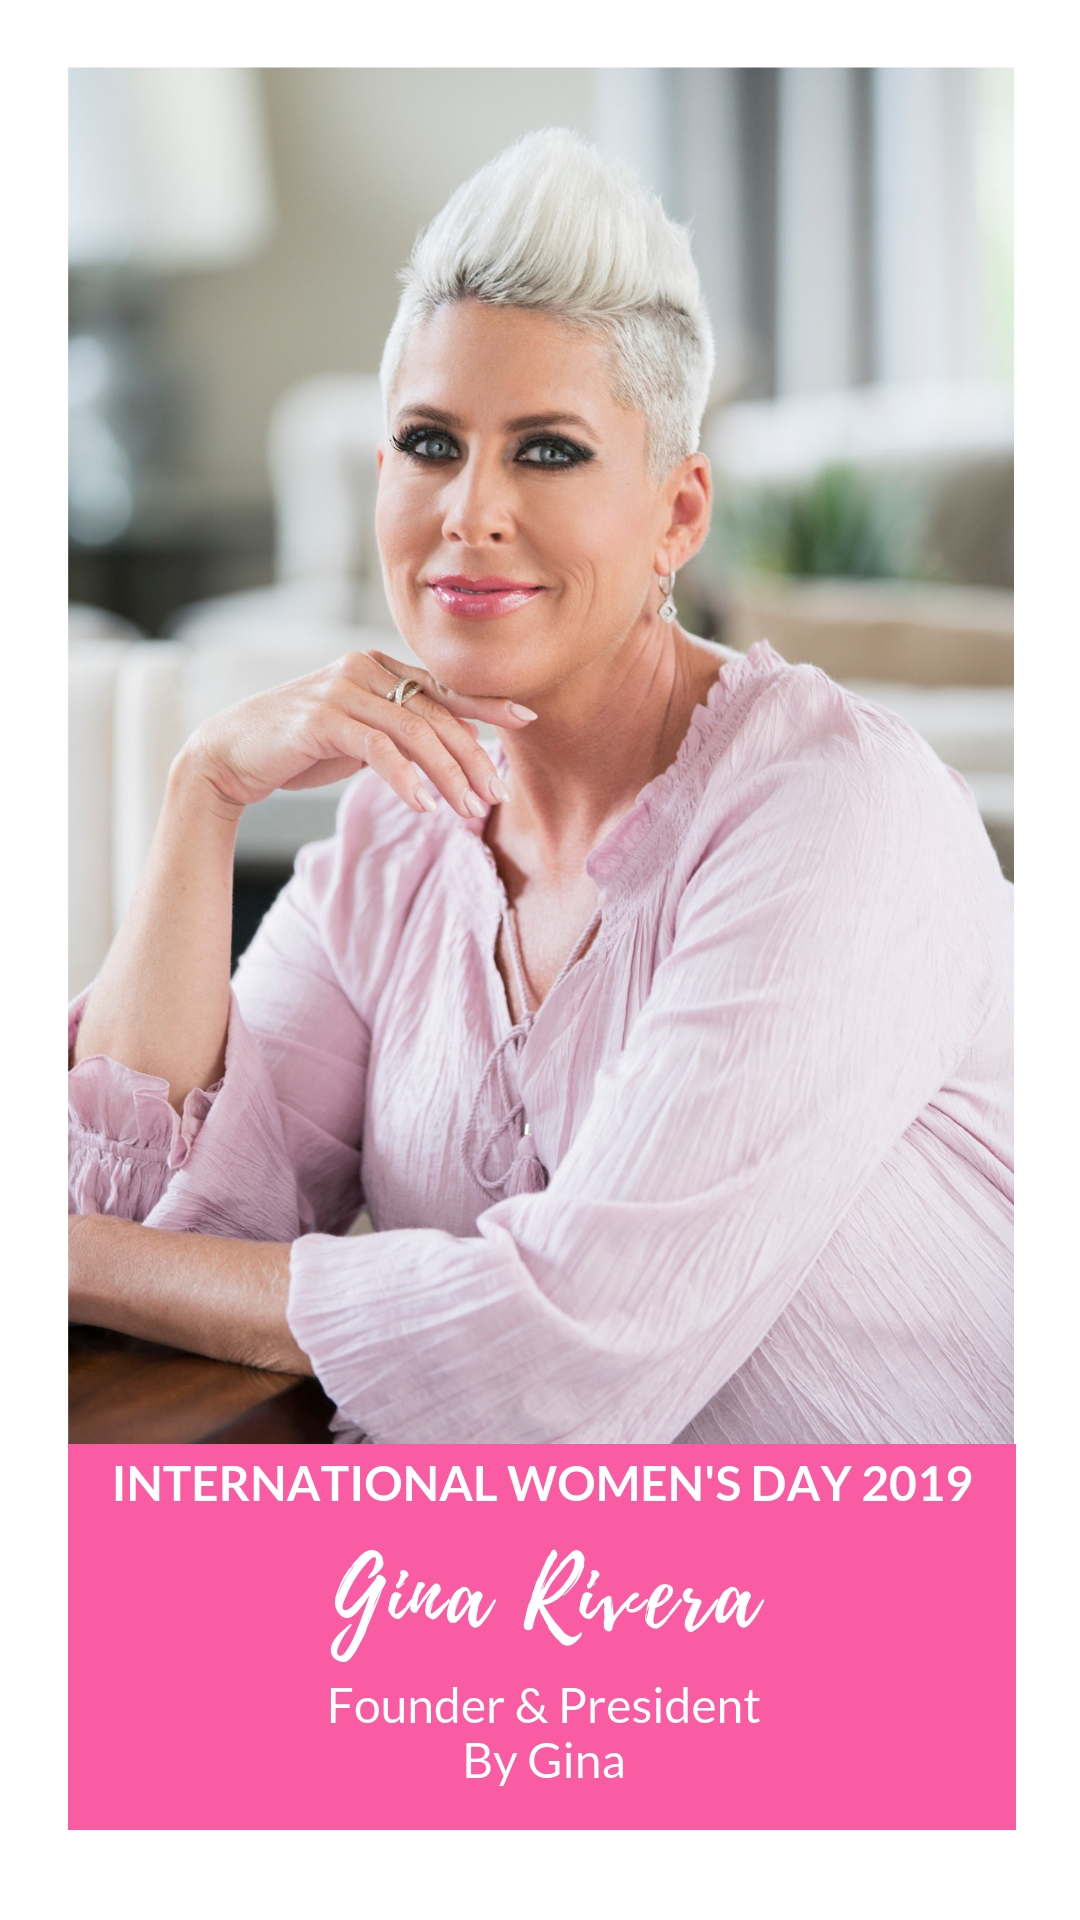 International Women's Day - Gina Rivera